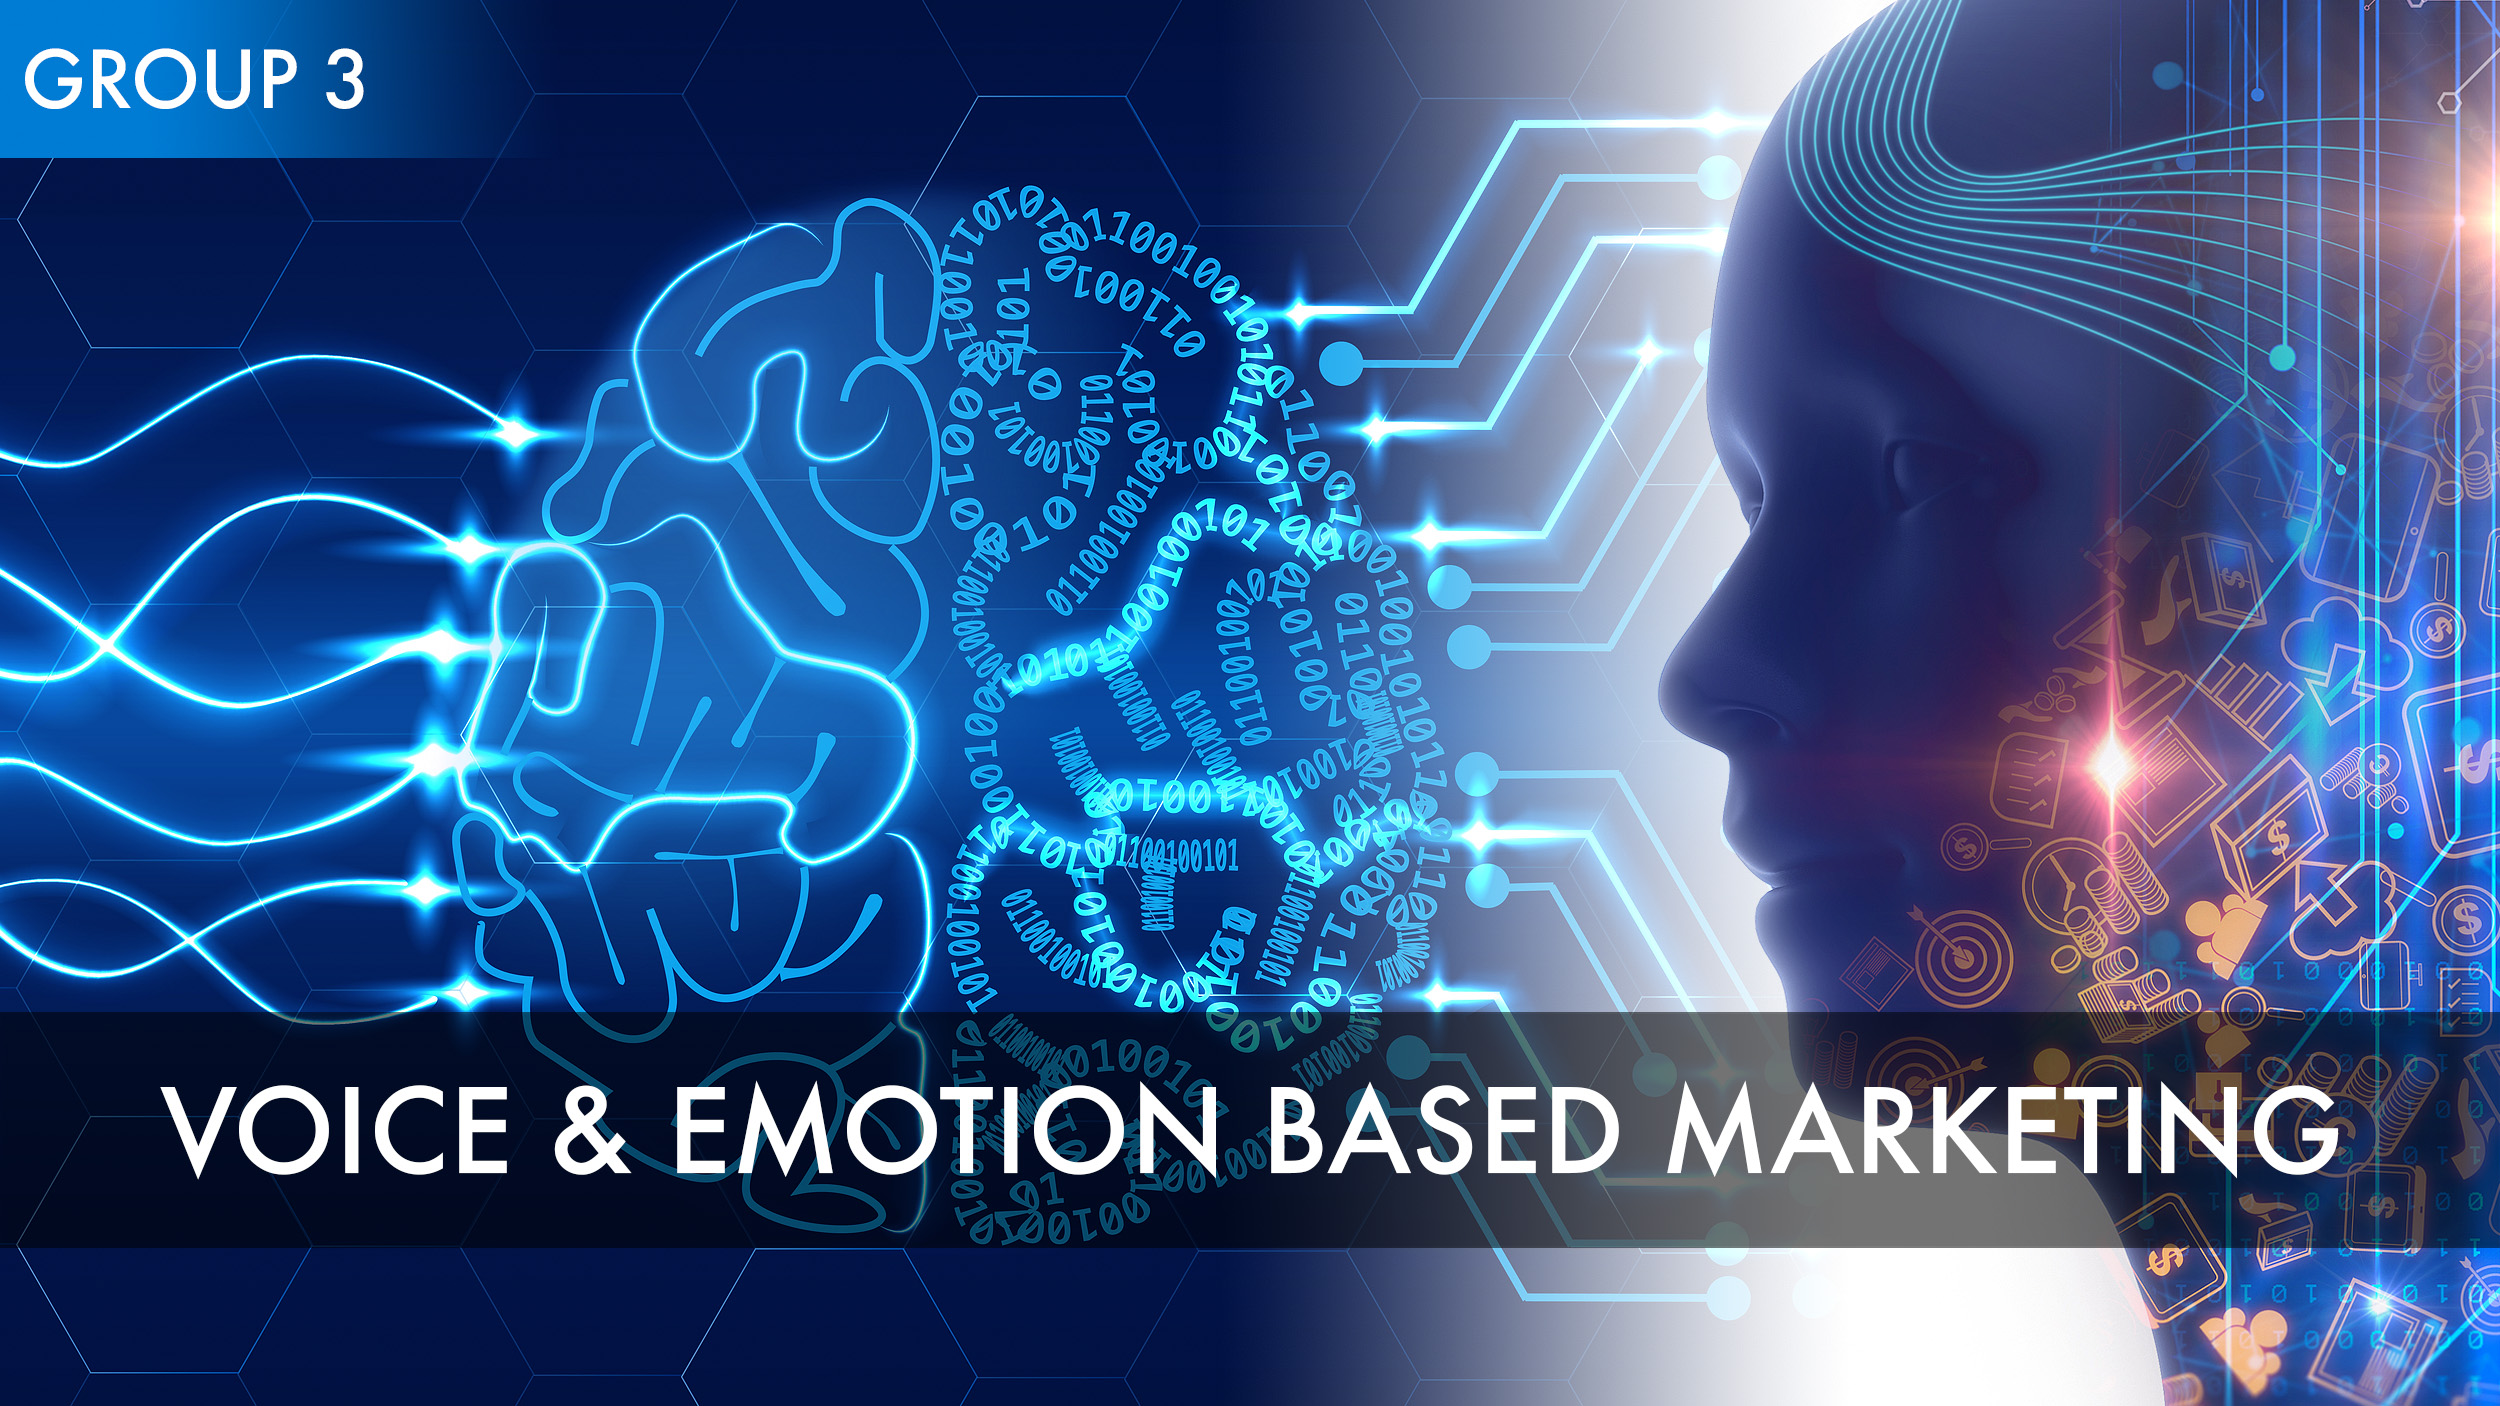 Voice and Emotion Based Marketing (Group 3).jpg